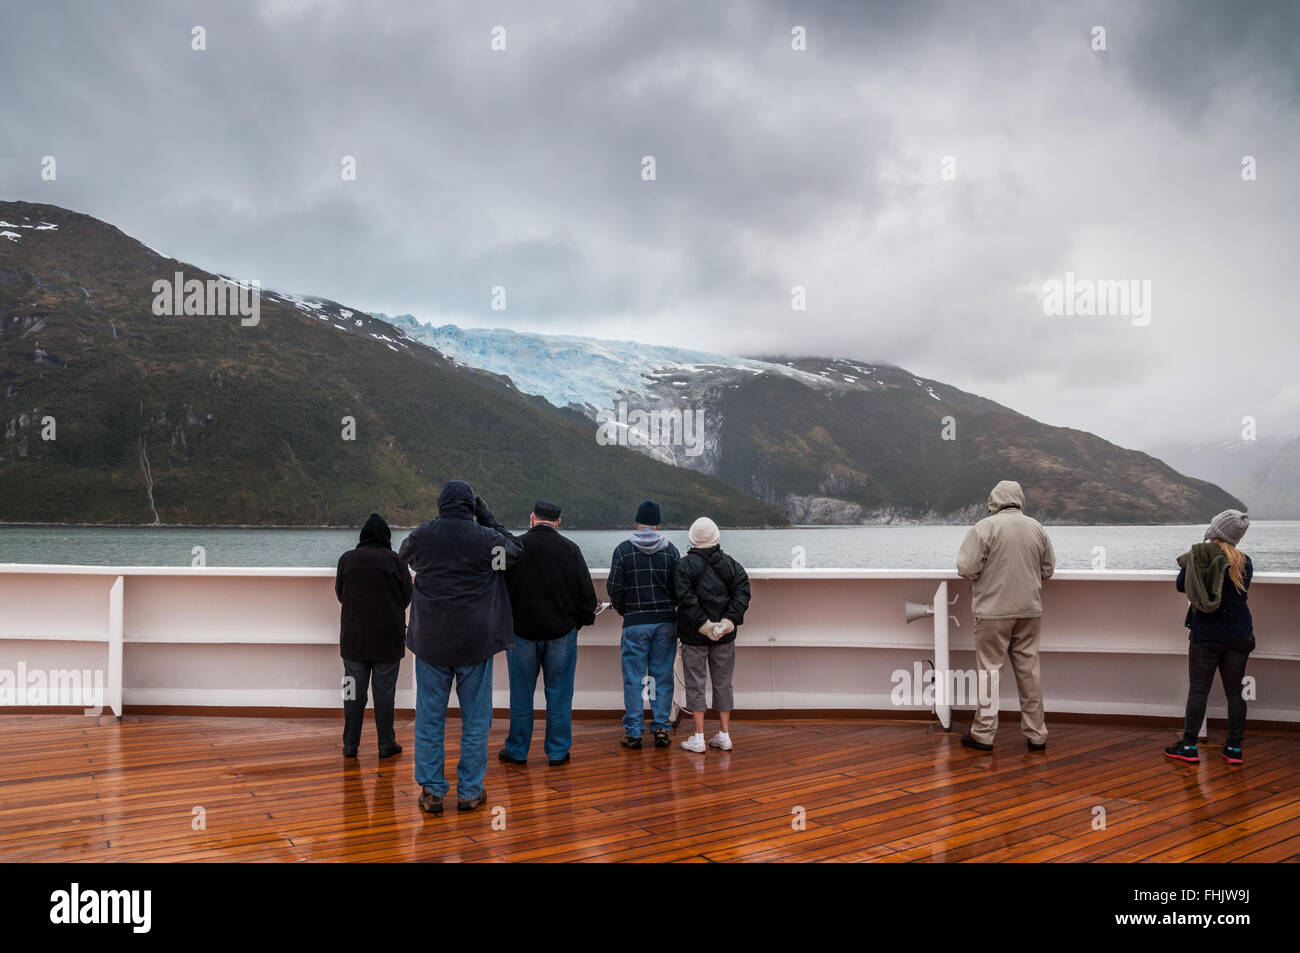 Passengers on board the cruise ship Veendam viewing beautiful Romanche Glacier - Stock Image